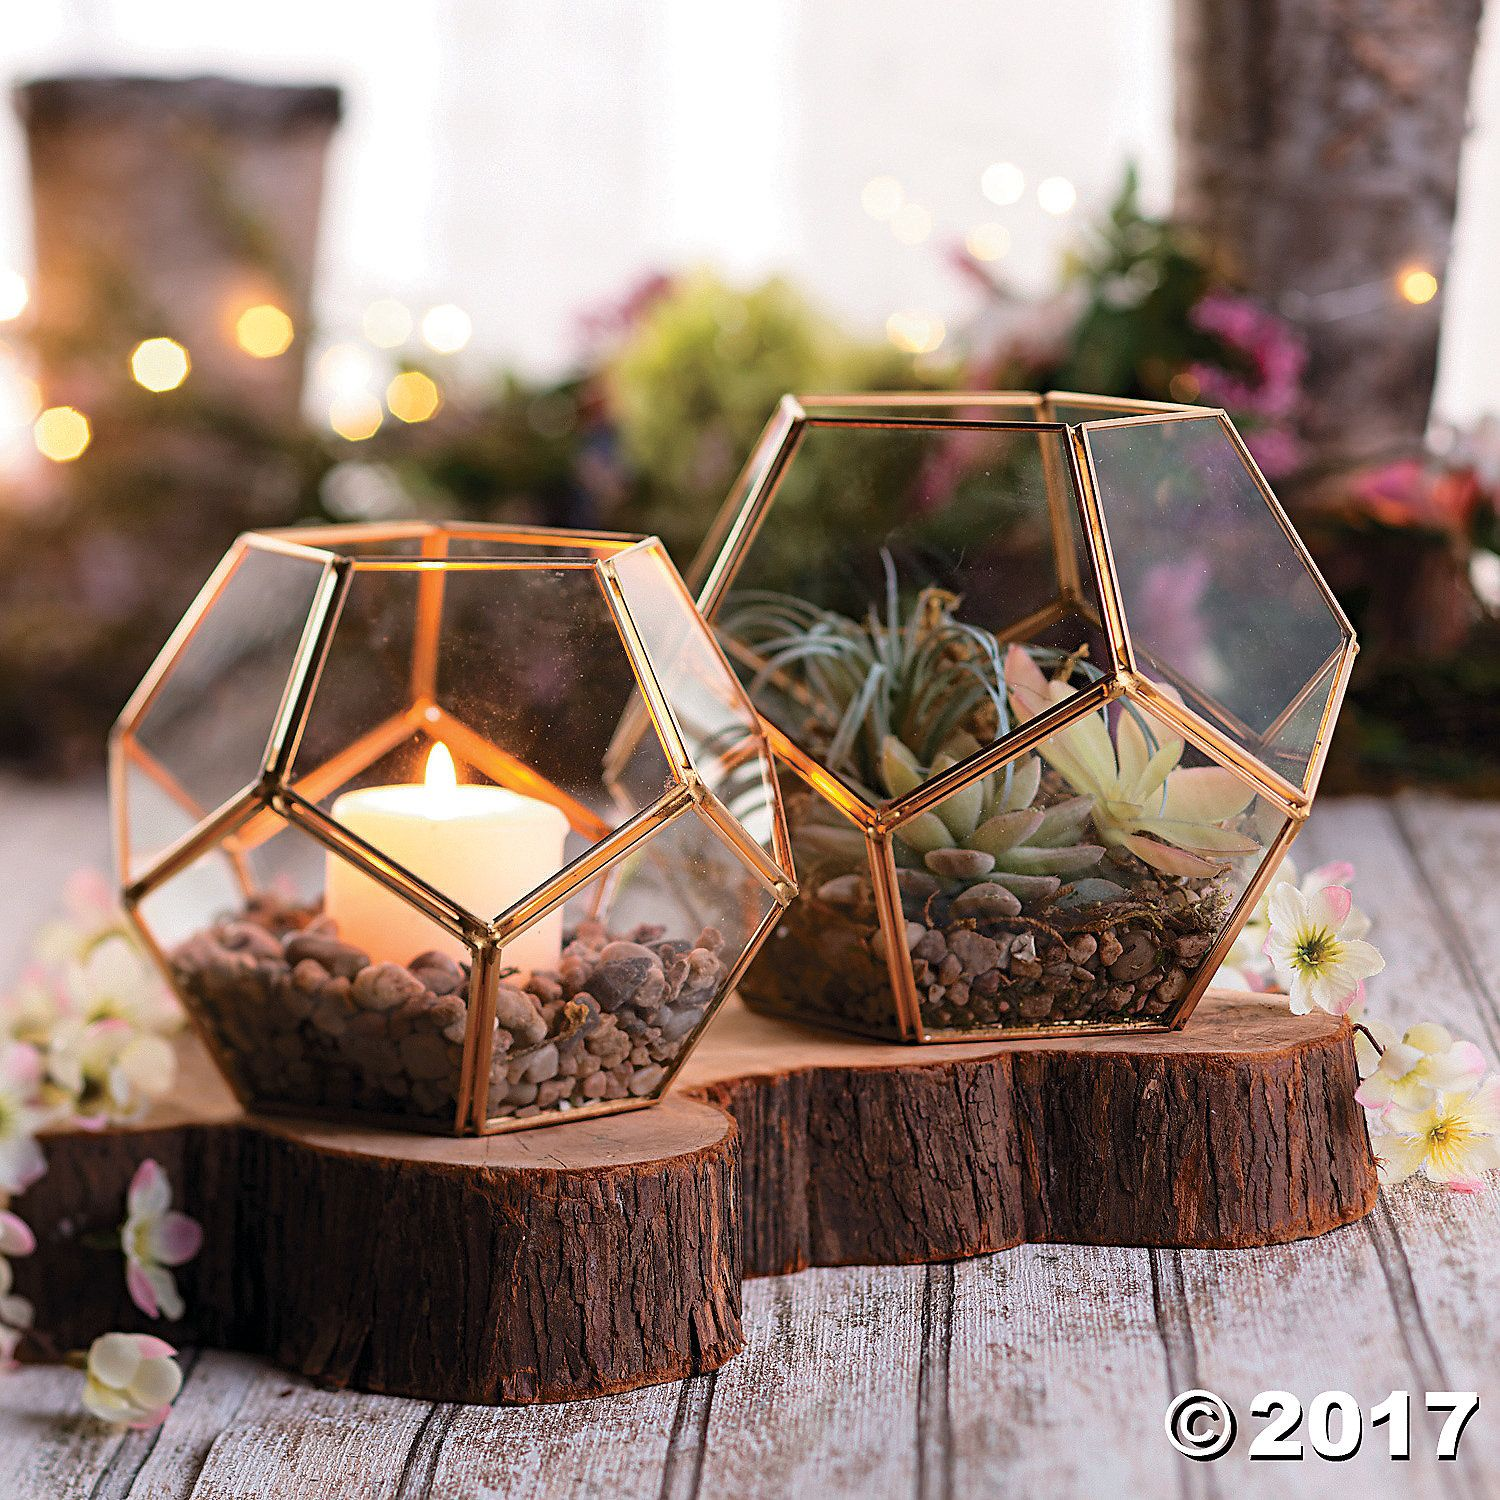 Create Beautiful Wedding Centerpieces With These Terrariums They Re Ideal Beautiful Wedding Centerpiece Pretty Wedding Centerpieces Wedding Table Centerpieces